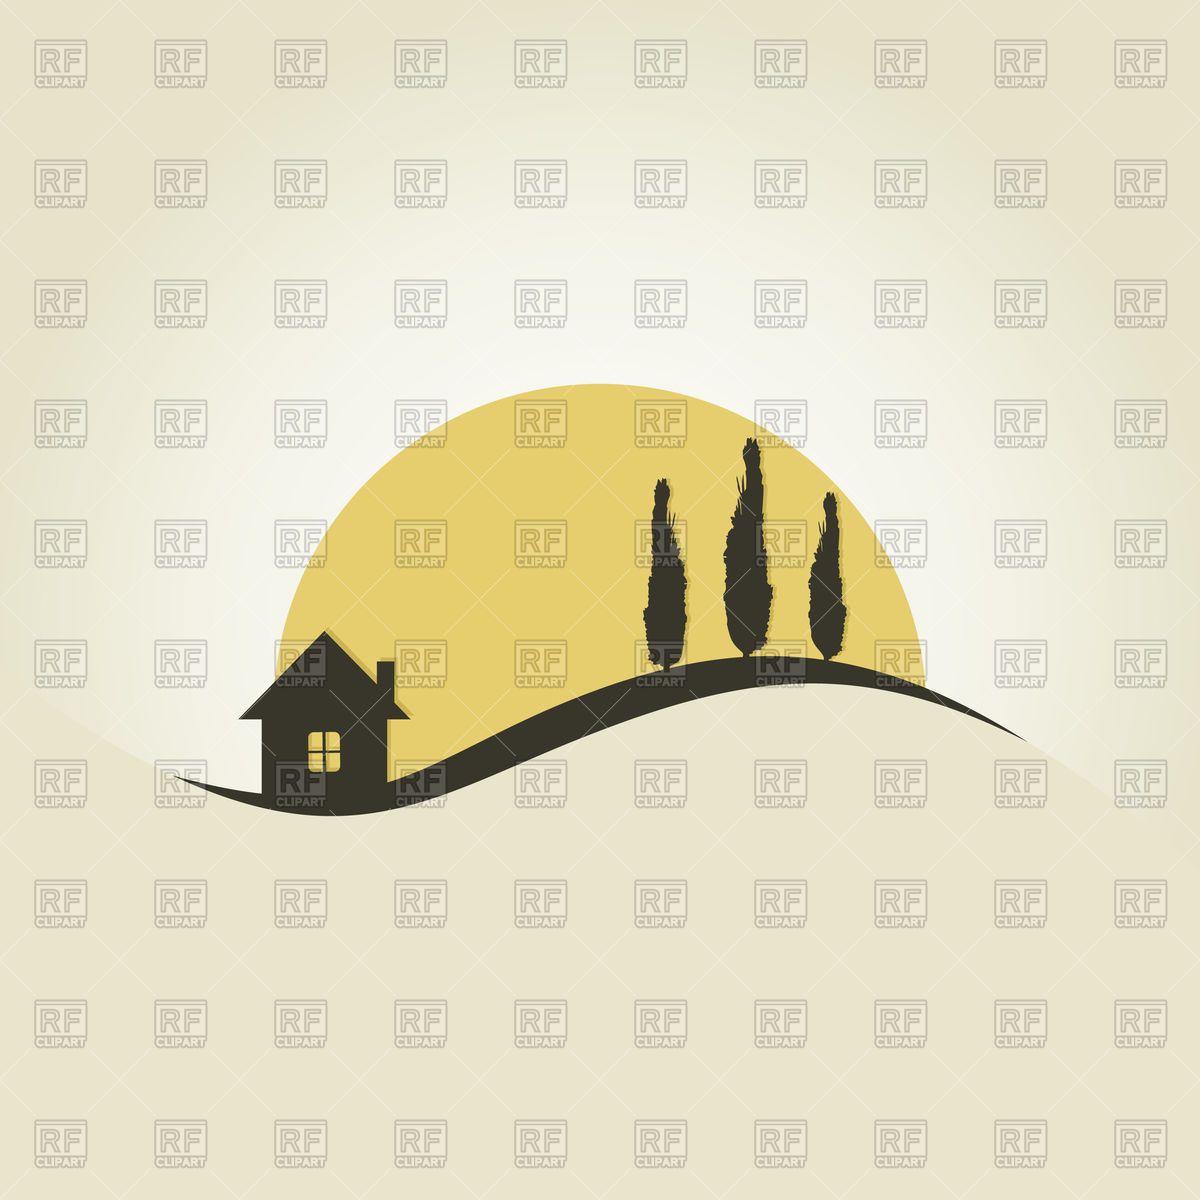 House and trees against sun icon Vector Image #82906.